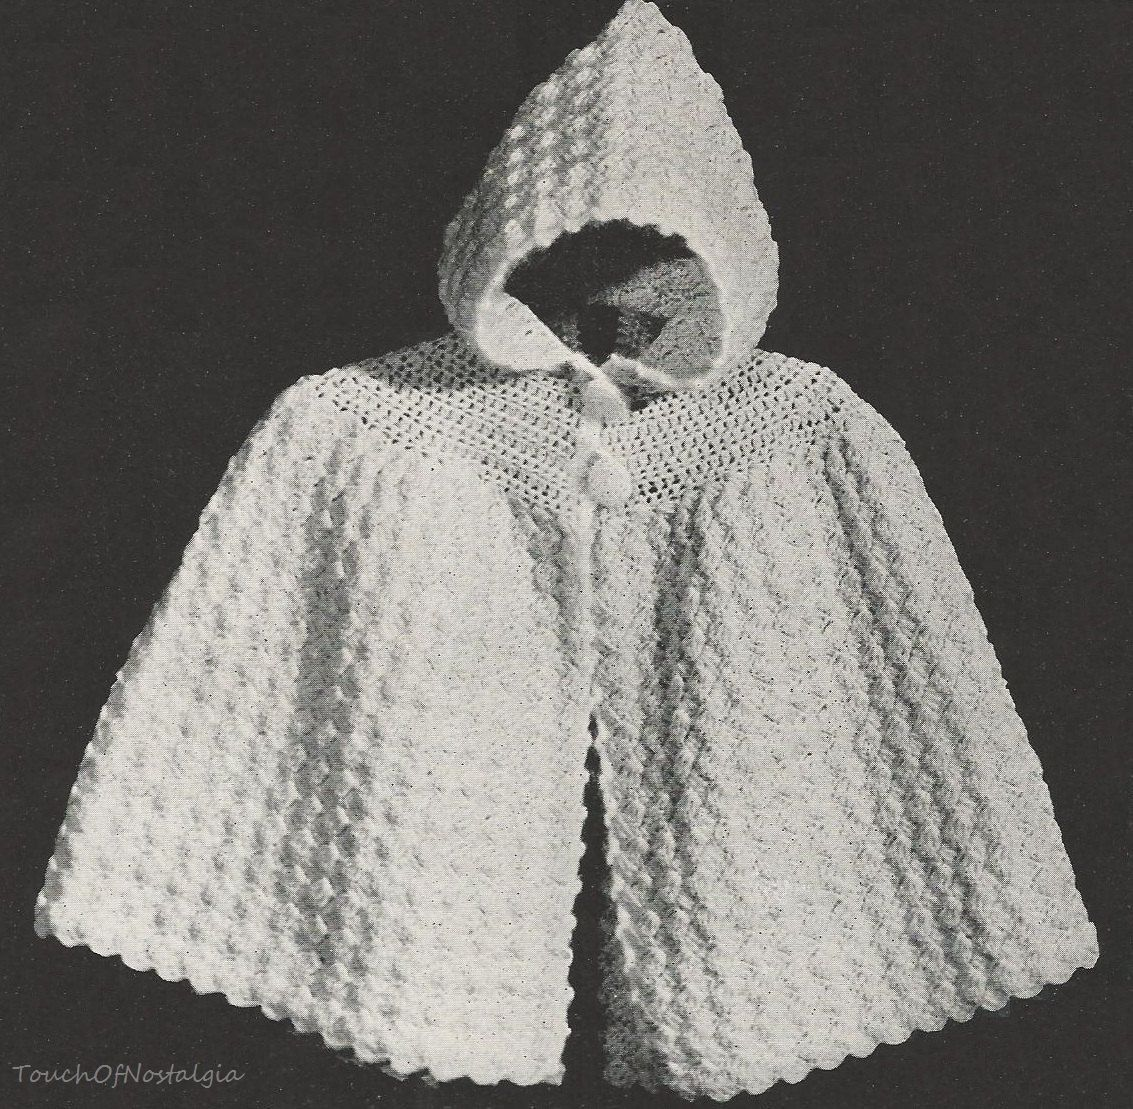 Crochet Baby CAPE Pattern Vintage 1940s - Cuddly HOODED Cape Pattern ...